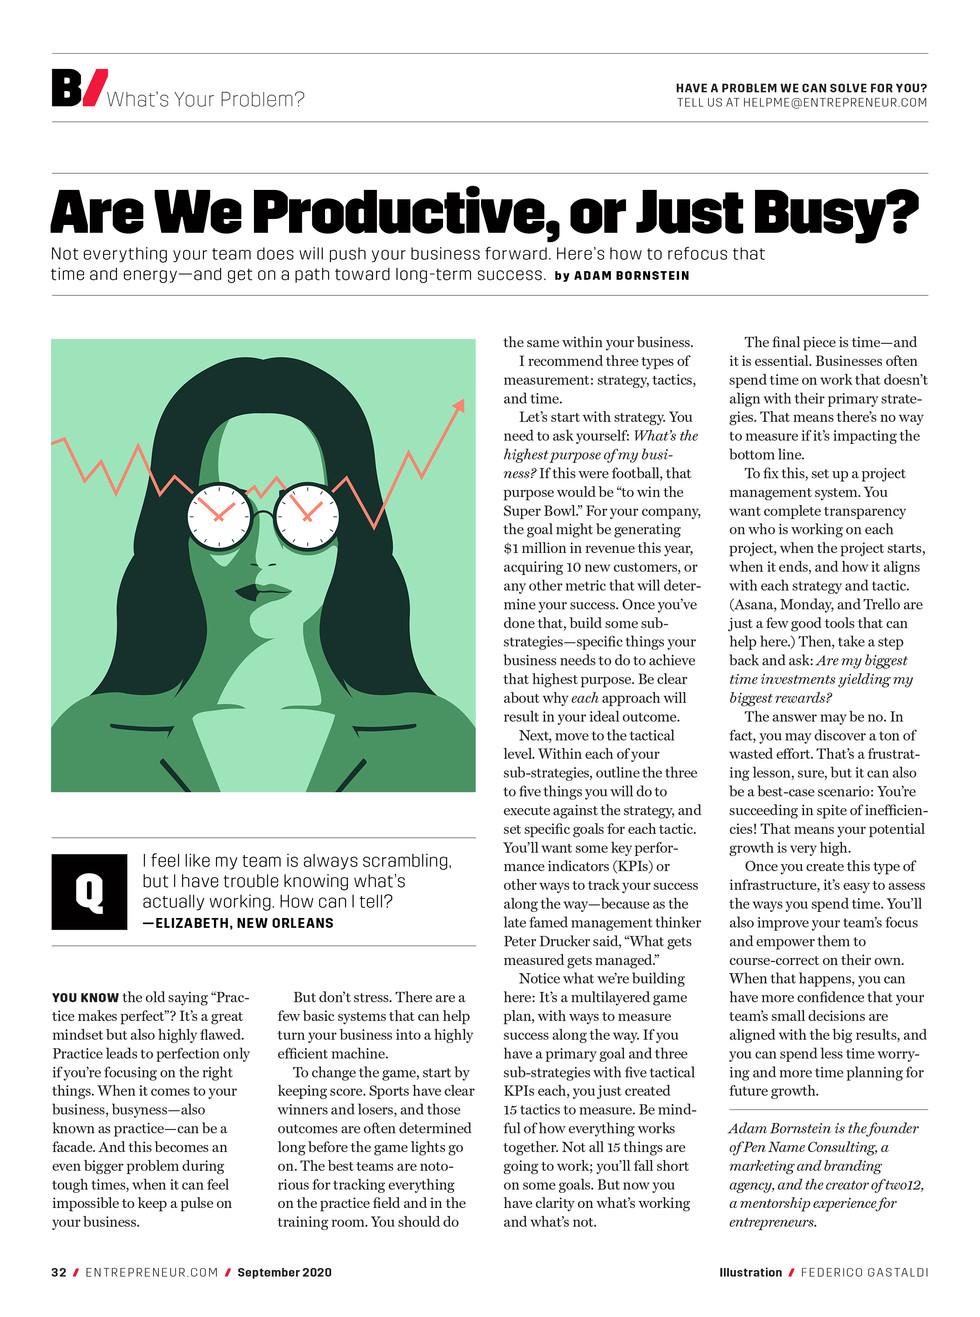 Are we productive or just busy_